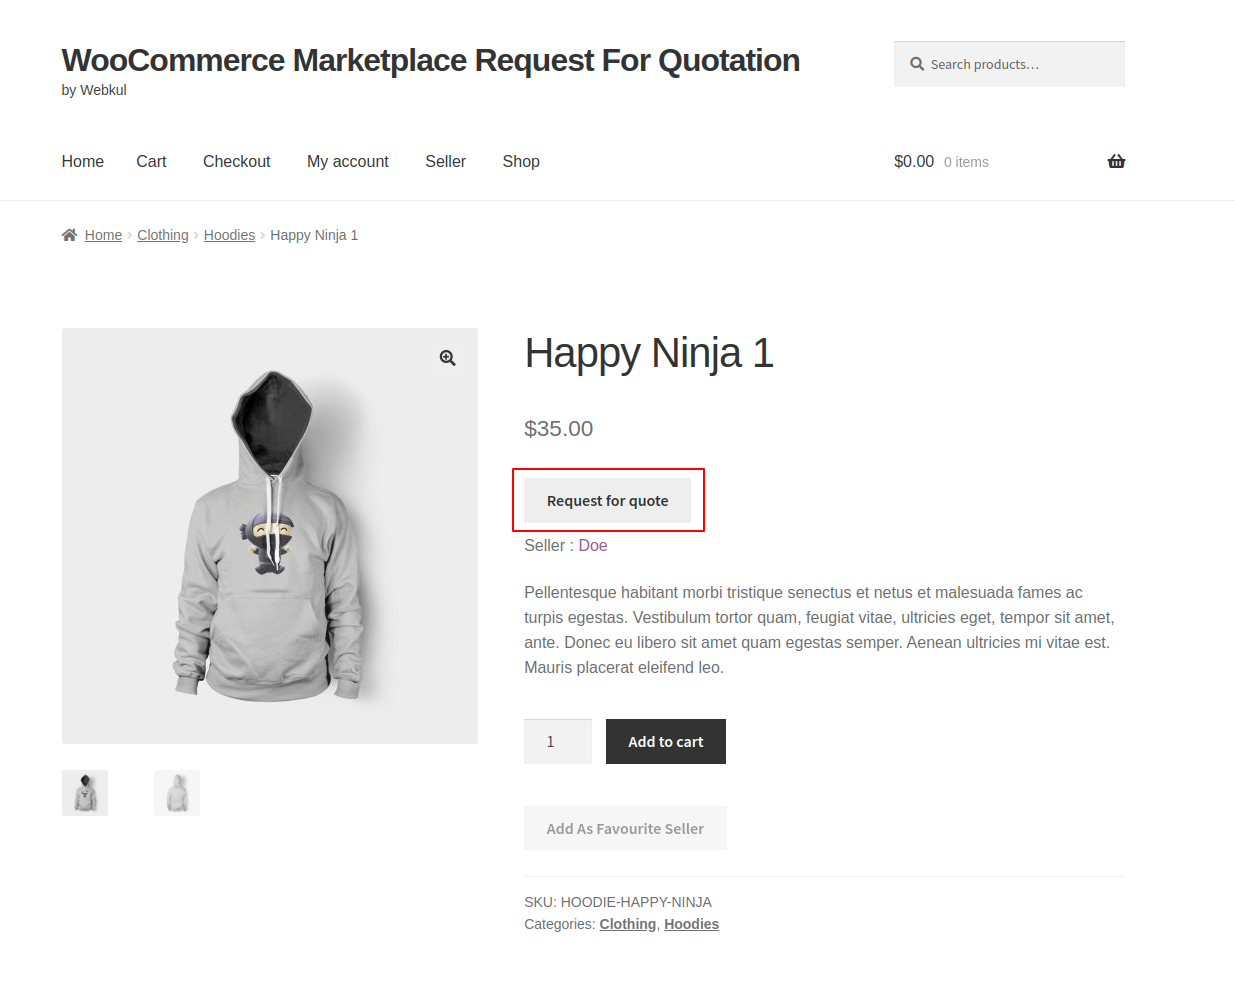 webkul-woocommerce-marketplace-request-for-quotation-product-page